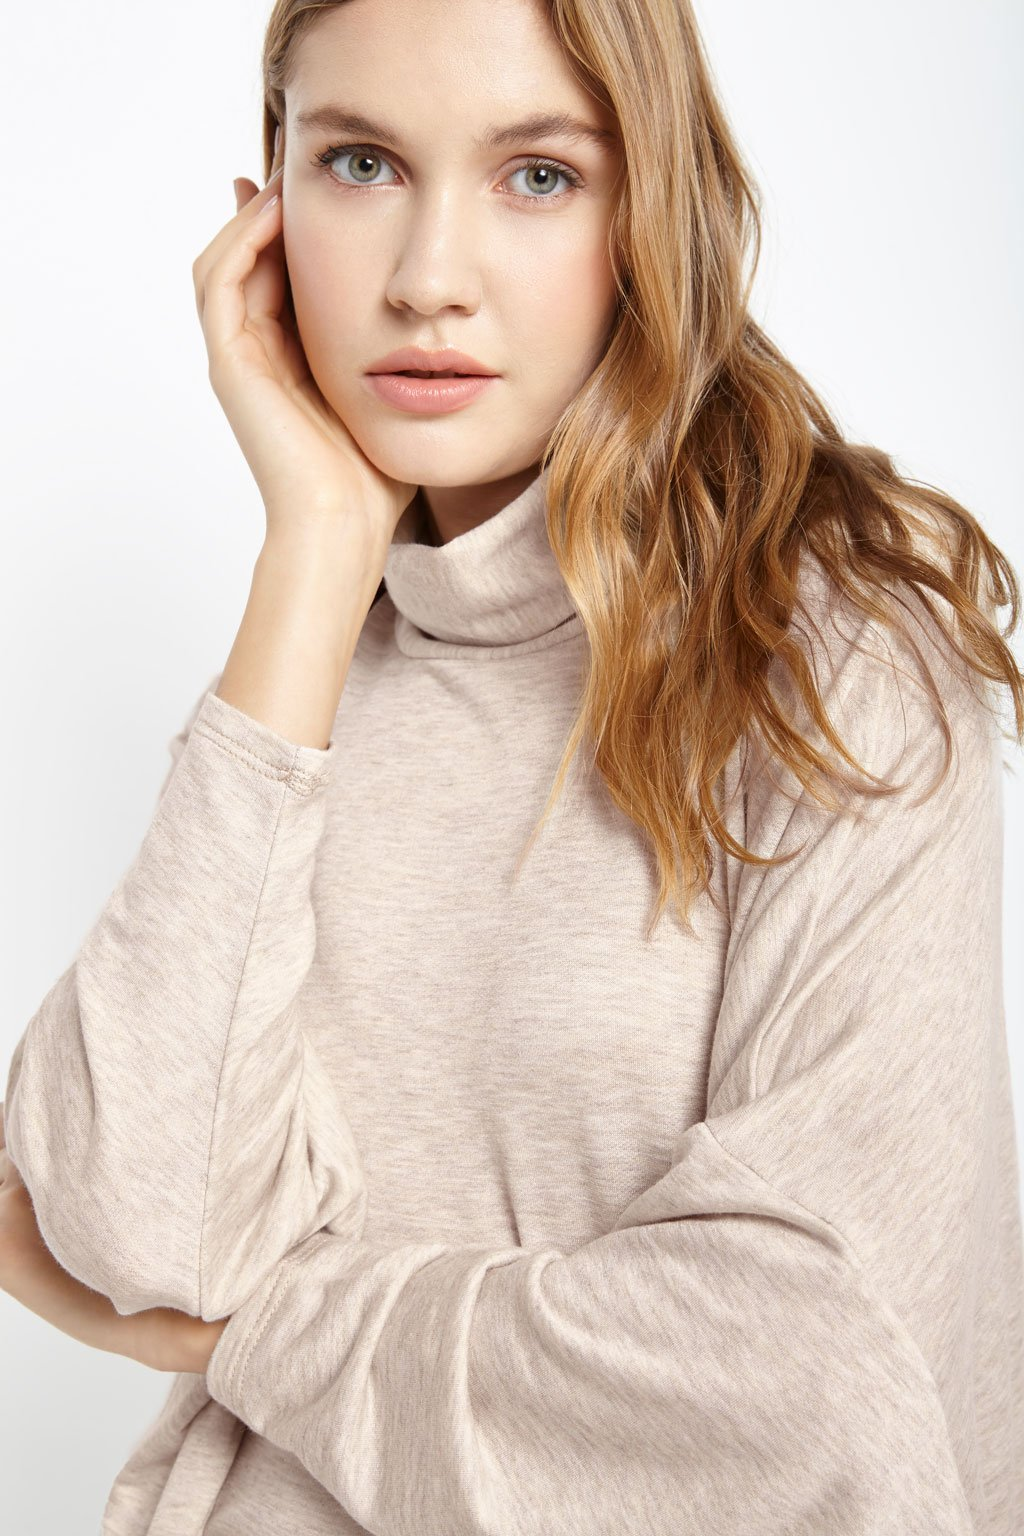 Poshsquare Tops Midge Turtleneck Top